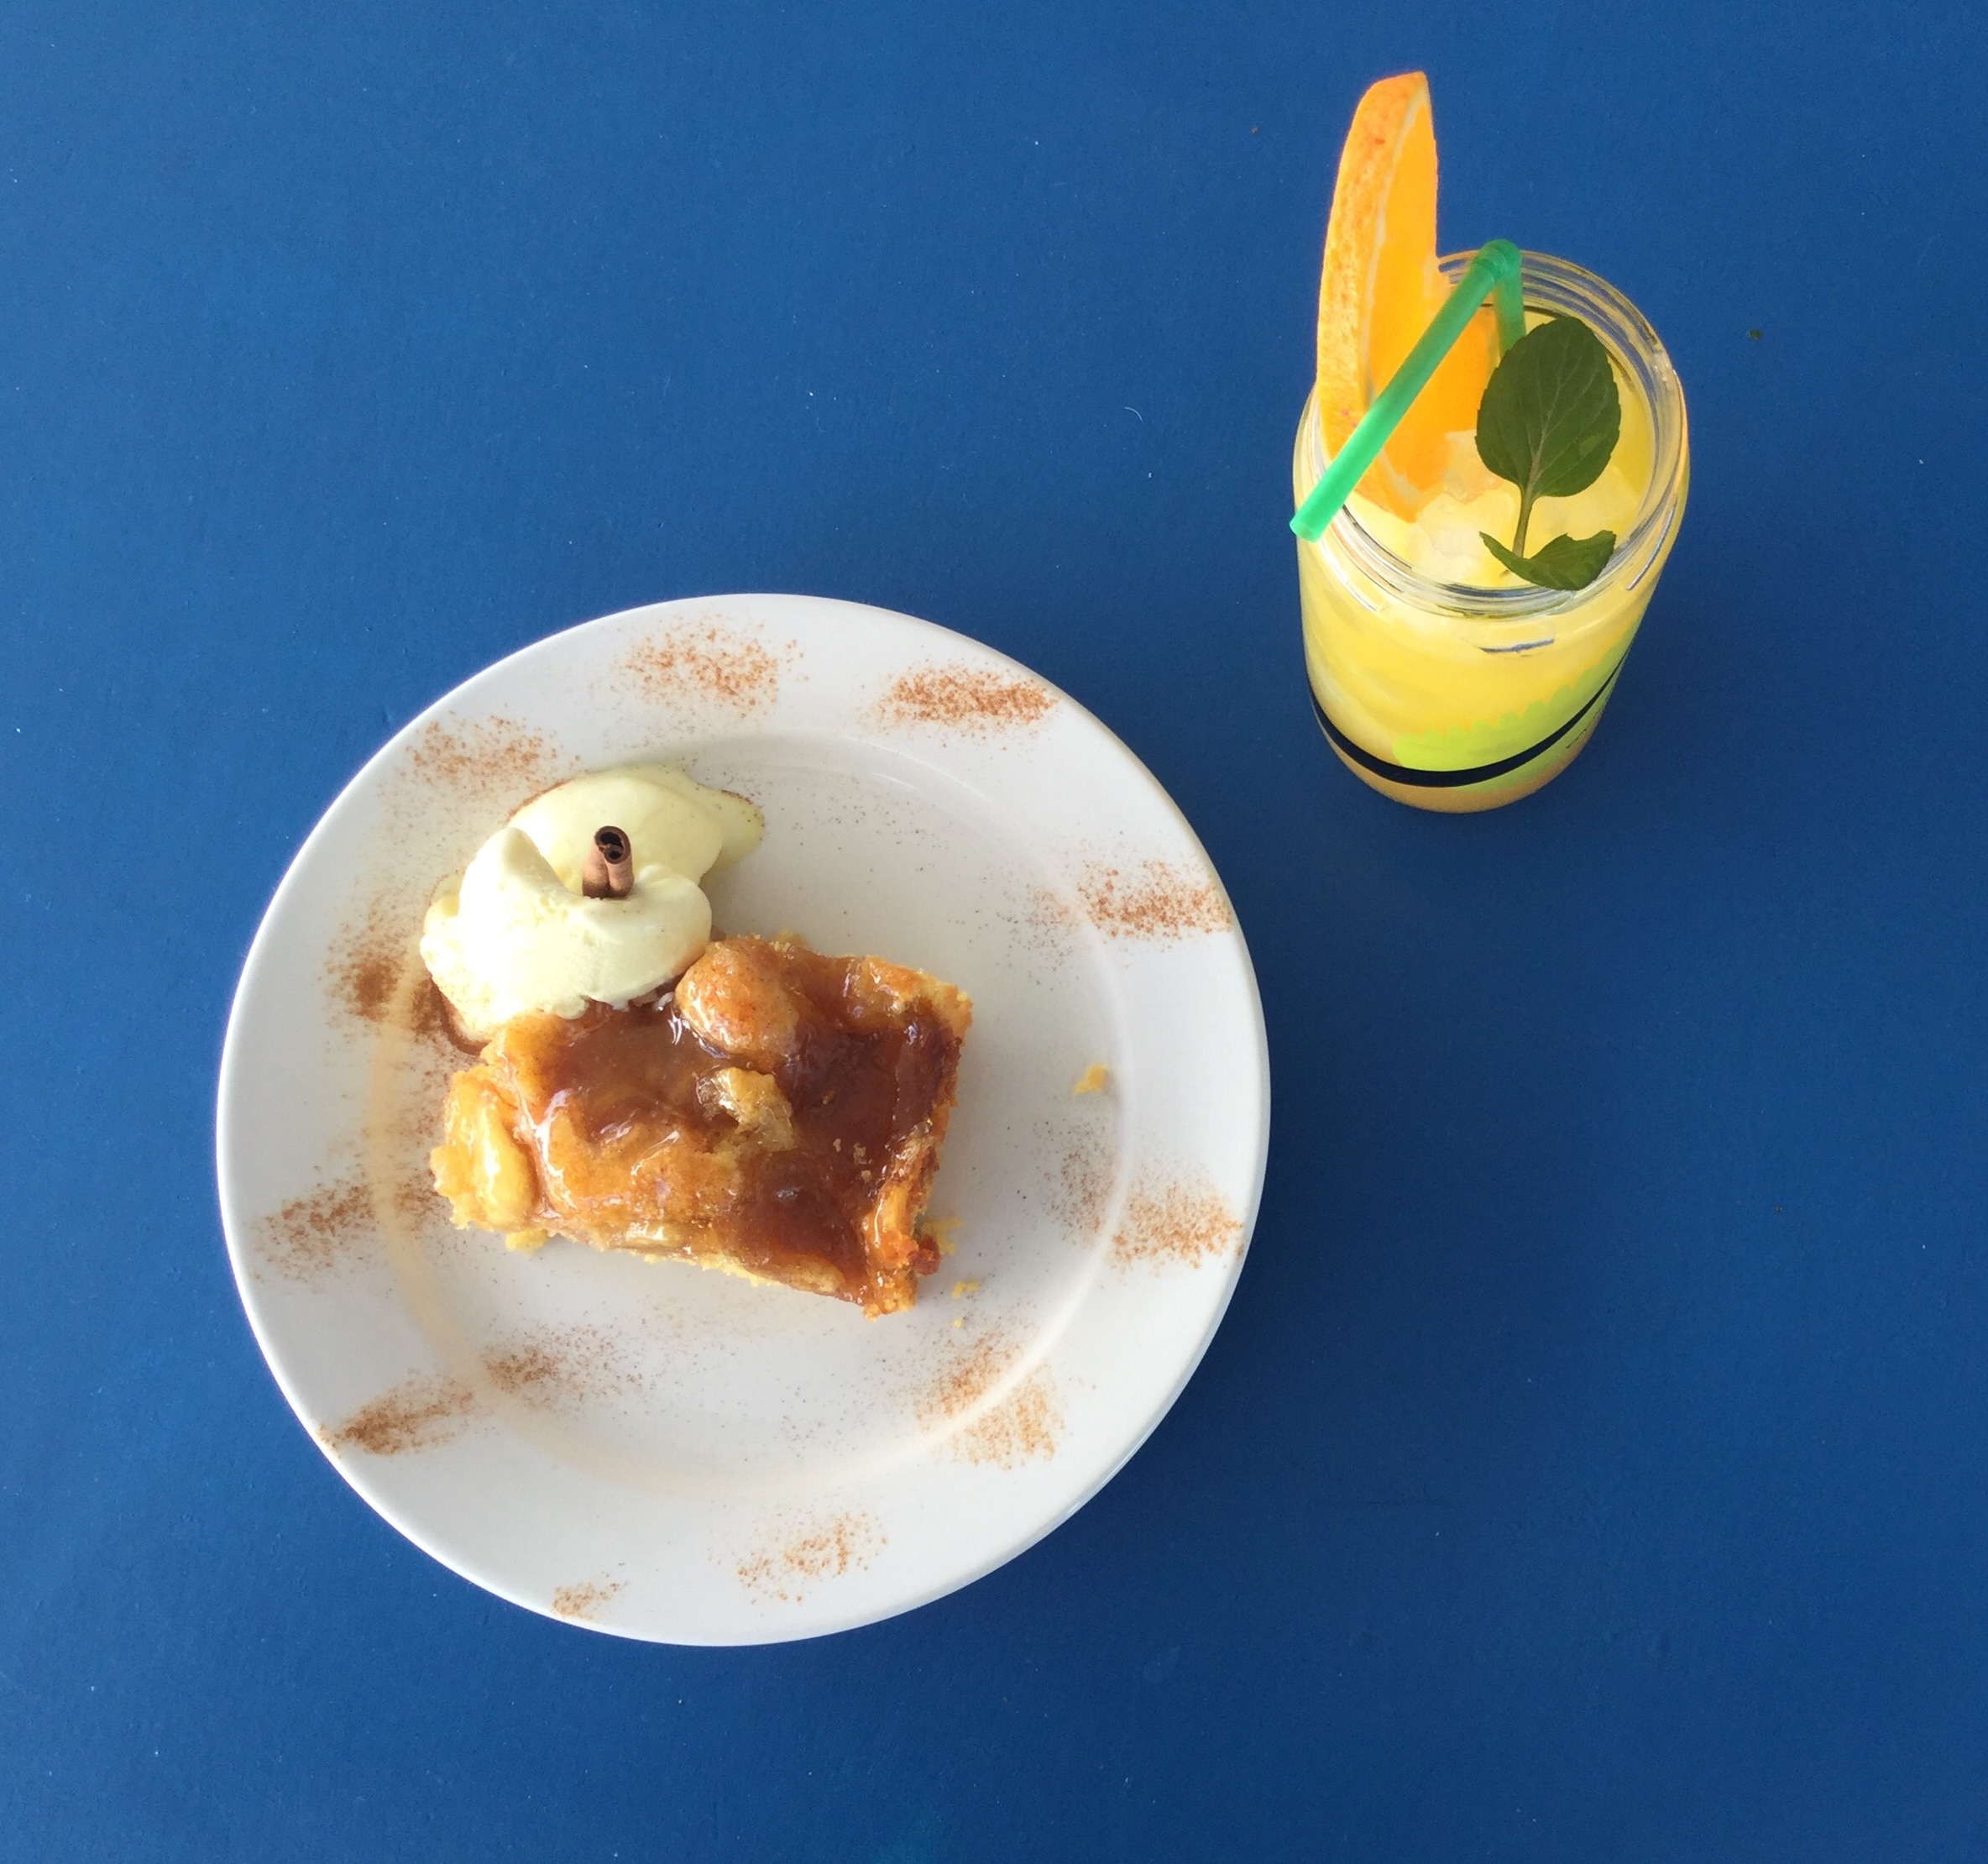 Apple pie with ice cream and drink